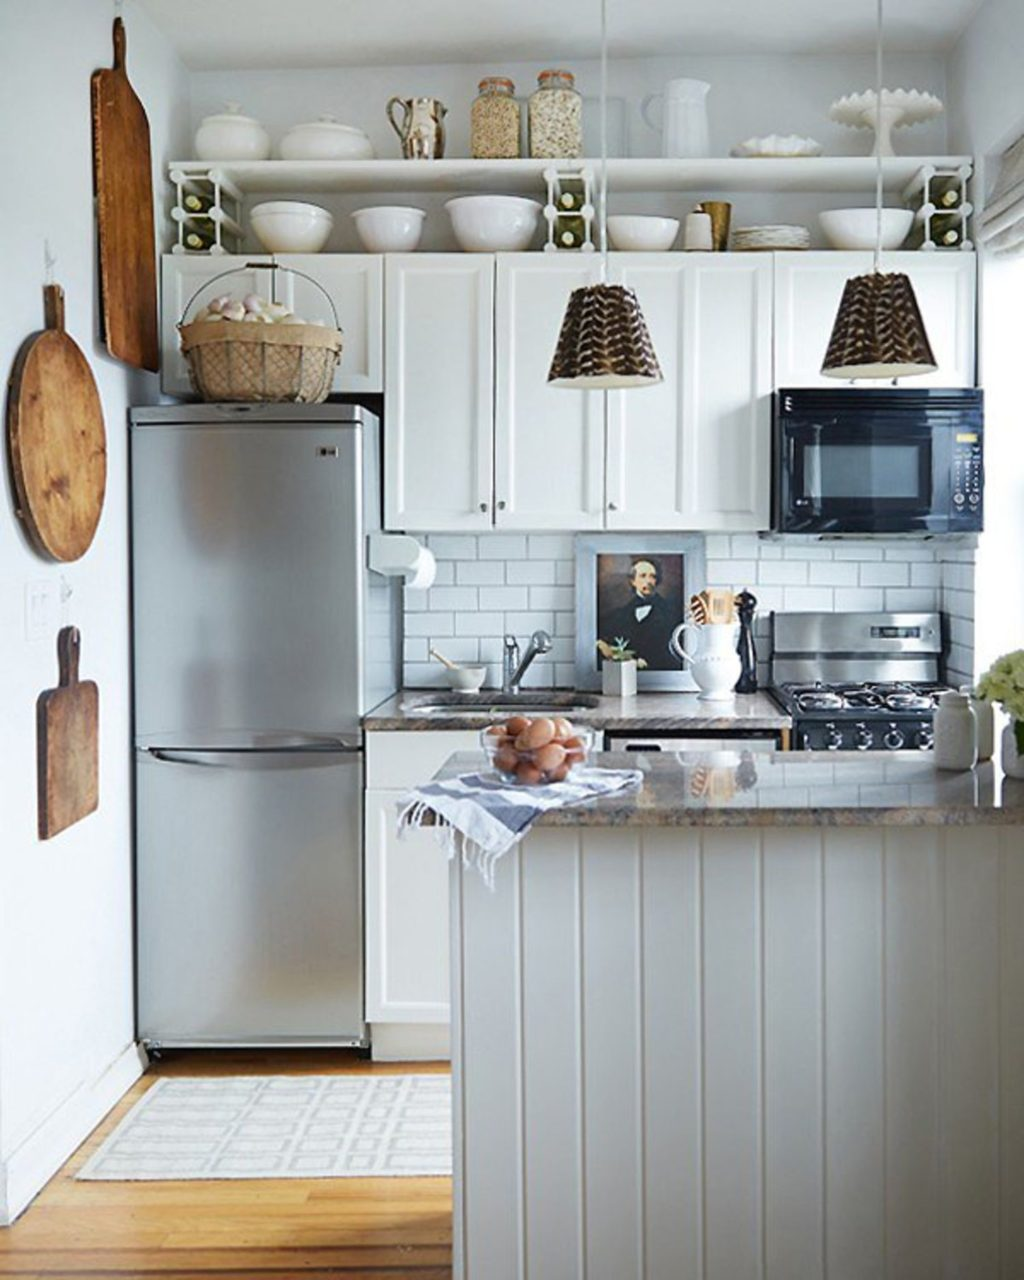 Maximizing-cabinet-top-3-1024x1280 80+ Unusual Kitchen Design Ideas for Small Spaces in 2021